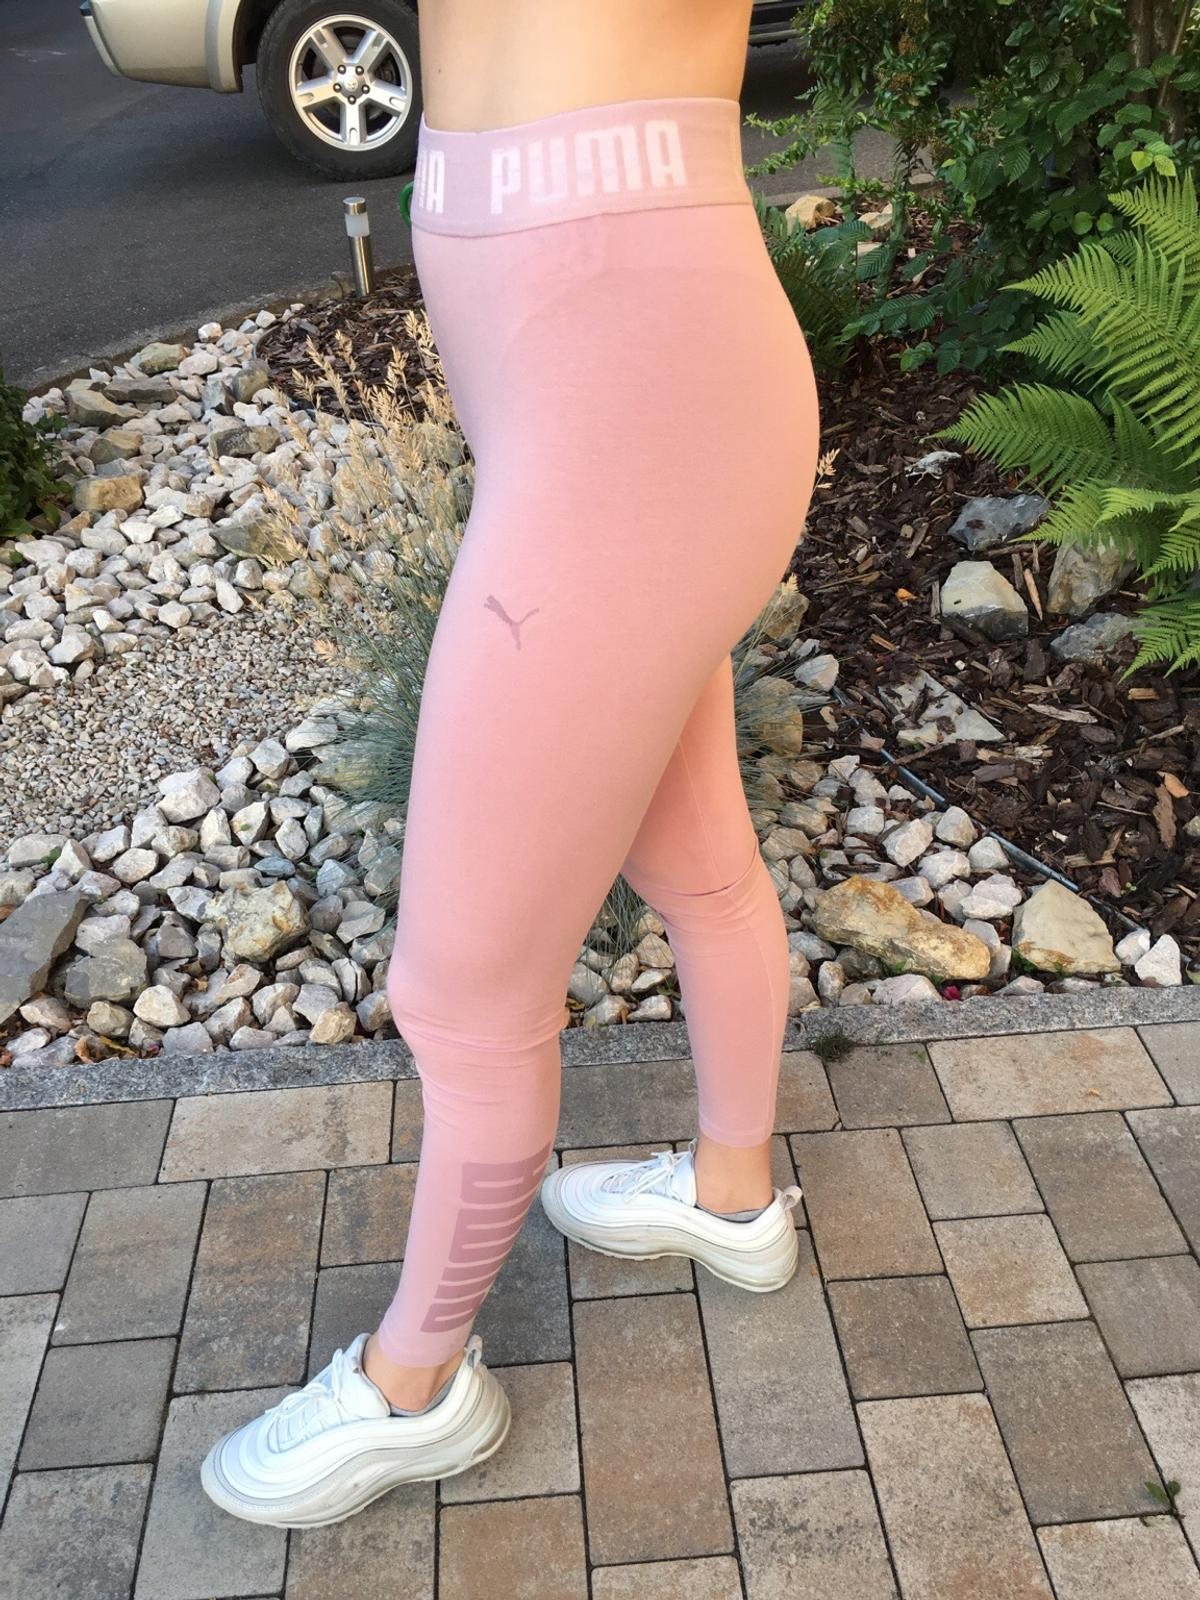 Tercero Birmania rango  Puma leggings rosa Größe S in 97074 Würzburg for €15.00 for sale | Shpock